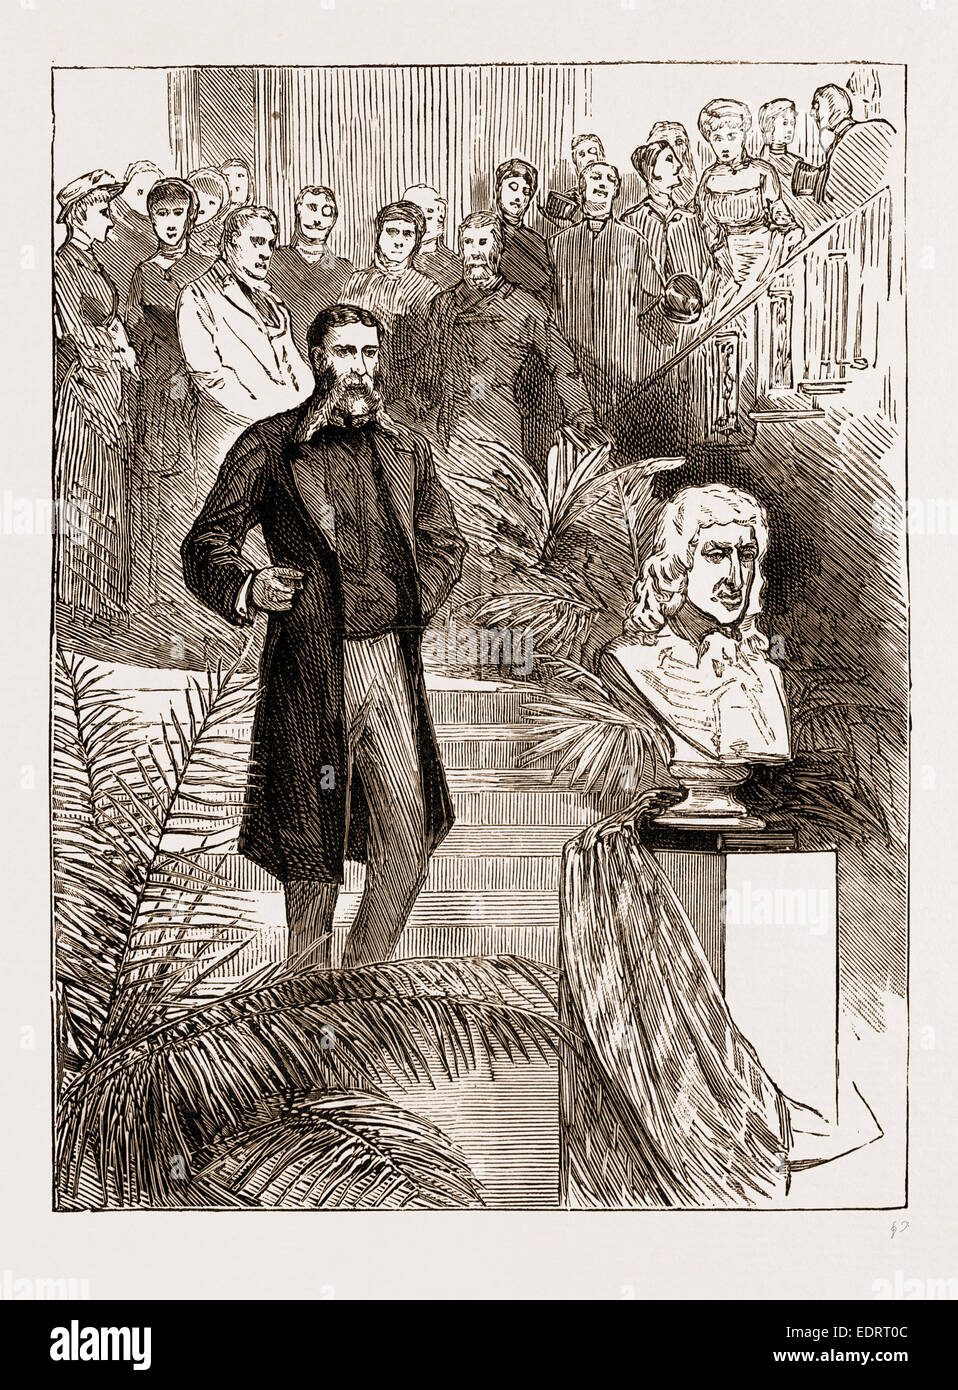 UNVEILING THE BUST OF FIELDING AT THE SHIRE HALL, TAUNTON, UK, 1883: 1. The Ceremony: Mr. Lowell's Address - Stock Image